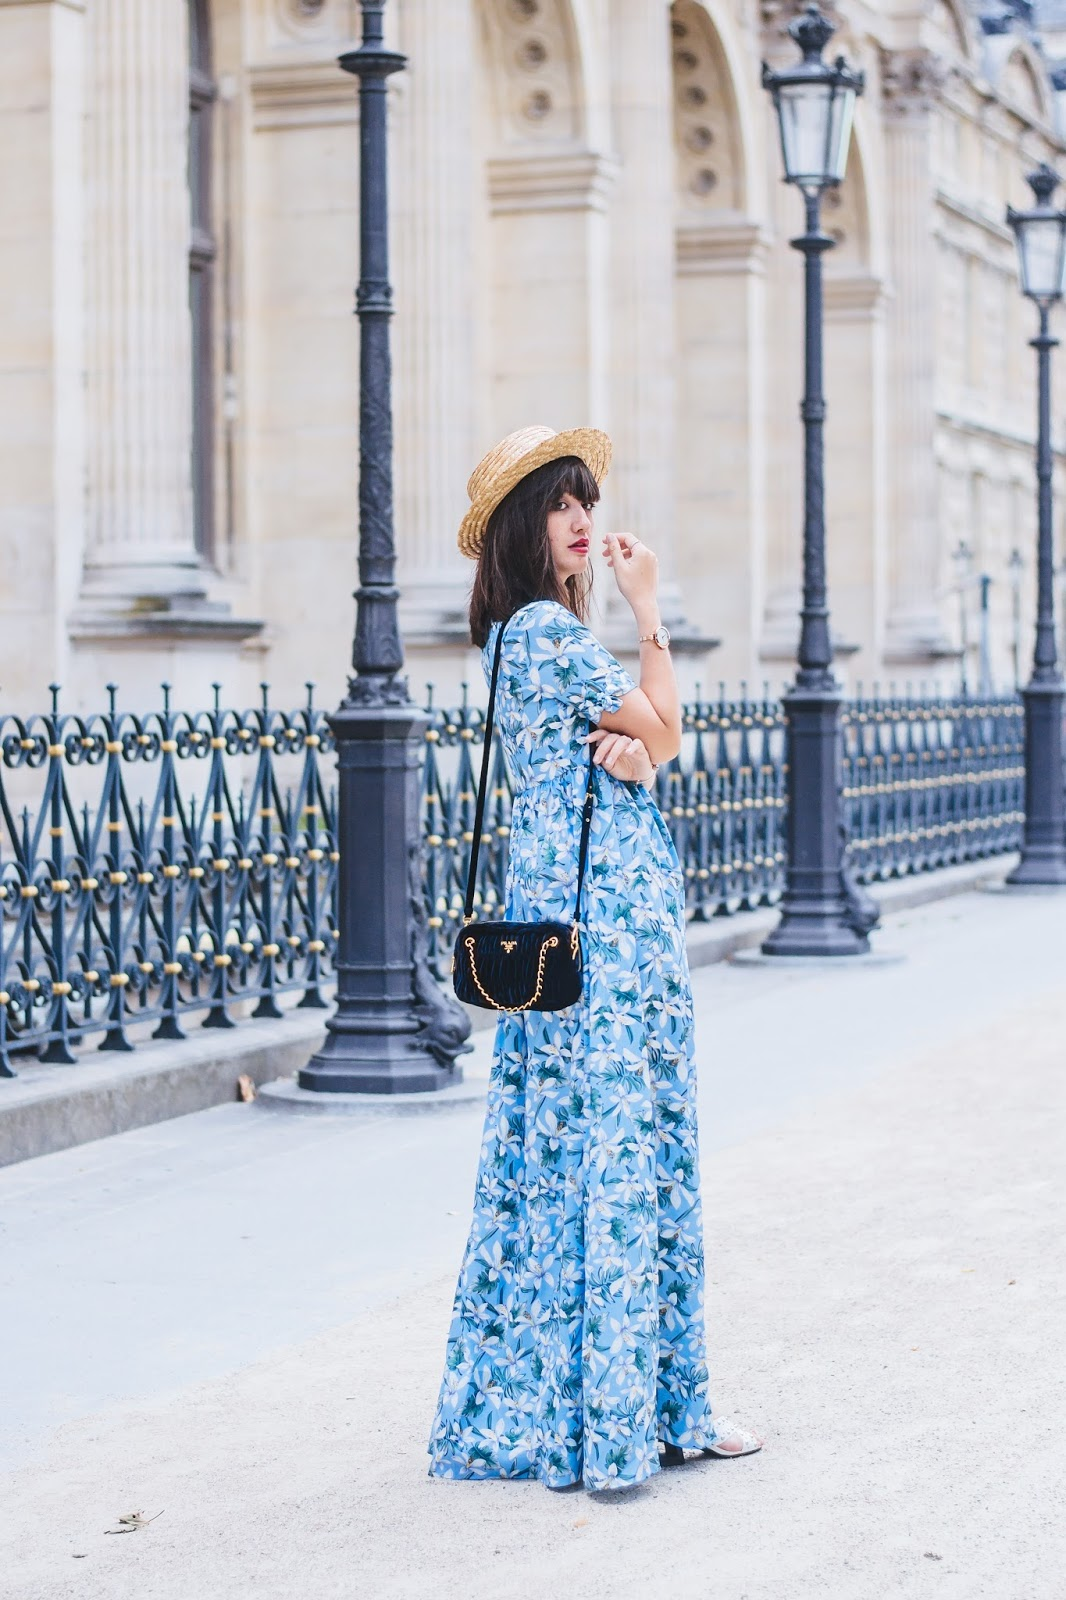 meetmeinparee-paris-fashion-look-style-mode-streetstyle-summerstyle-bloggerinparis